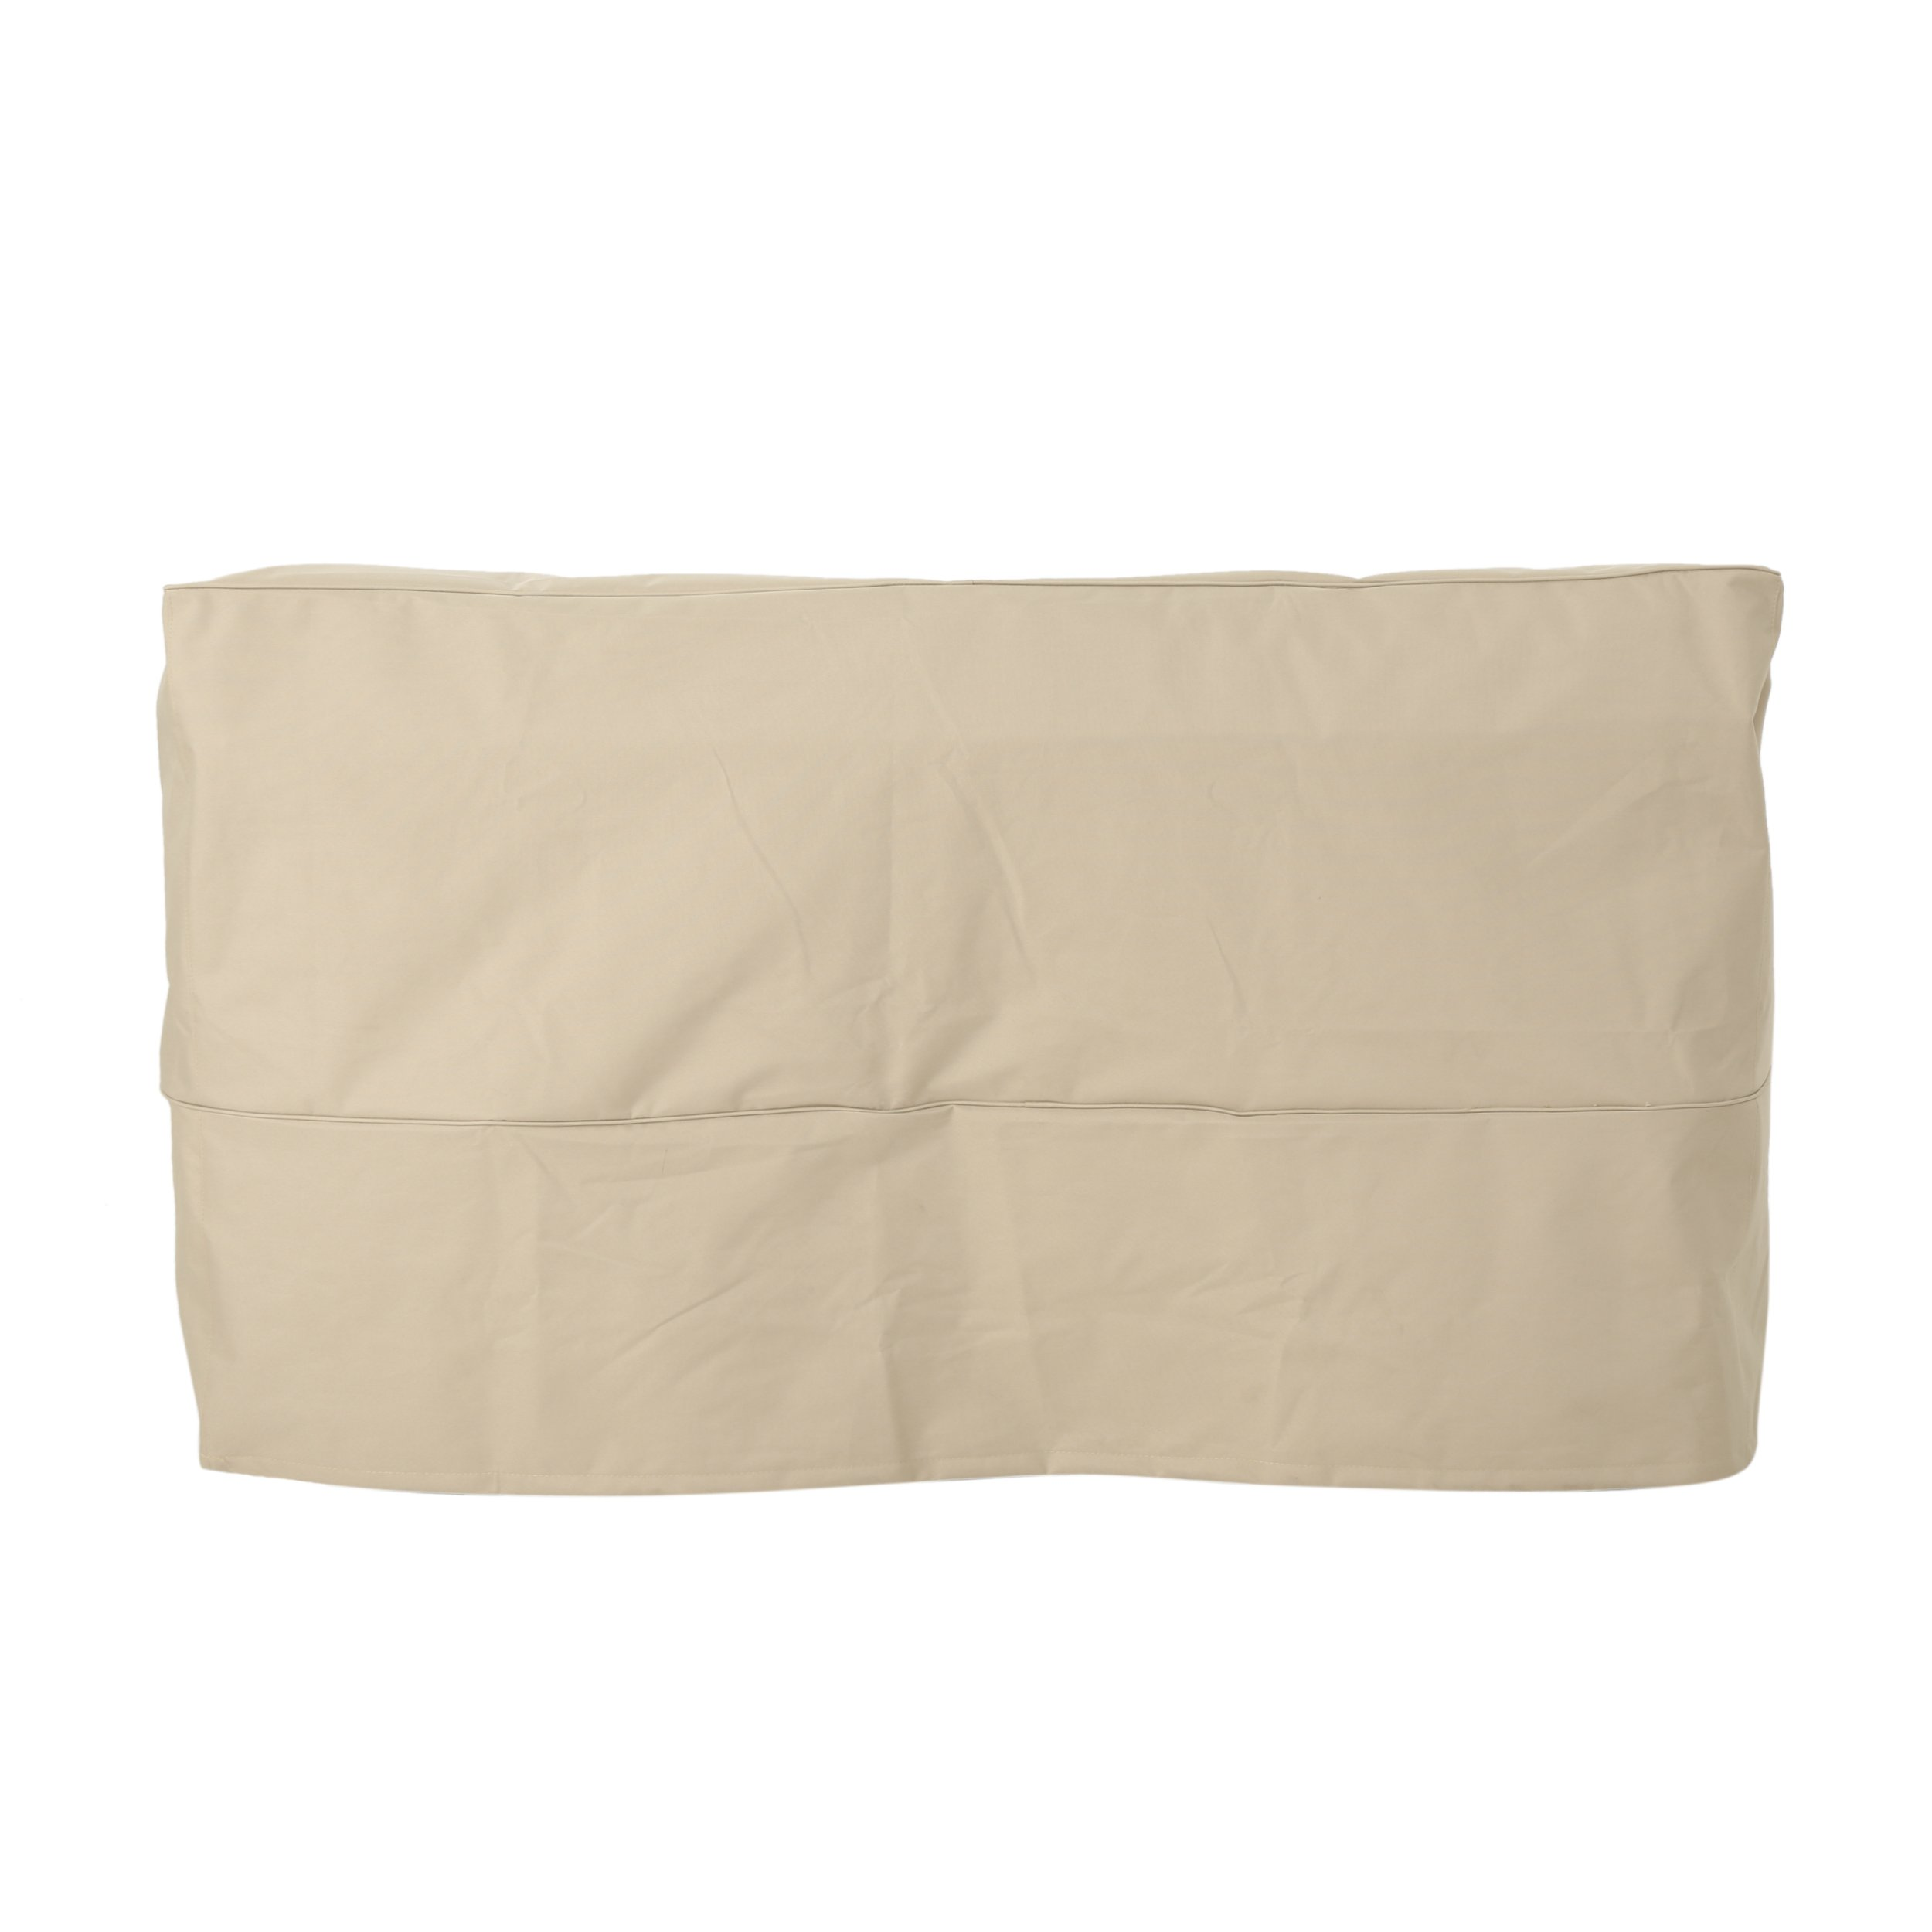 Charlene Outdoor 60'' by 35'' Waterproof Loveseat Cover, Beige by Great Deal Furniture (Image #2)